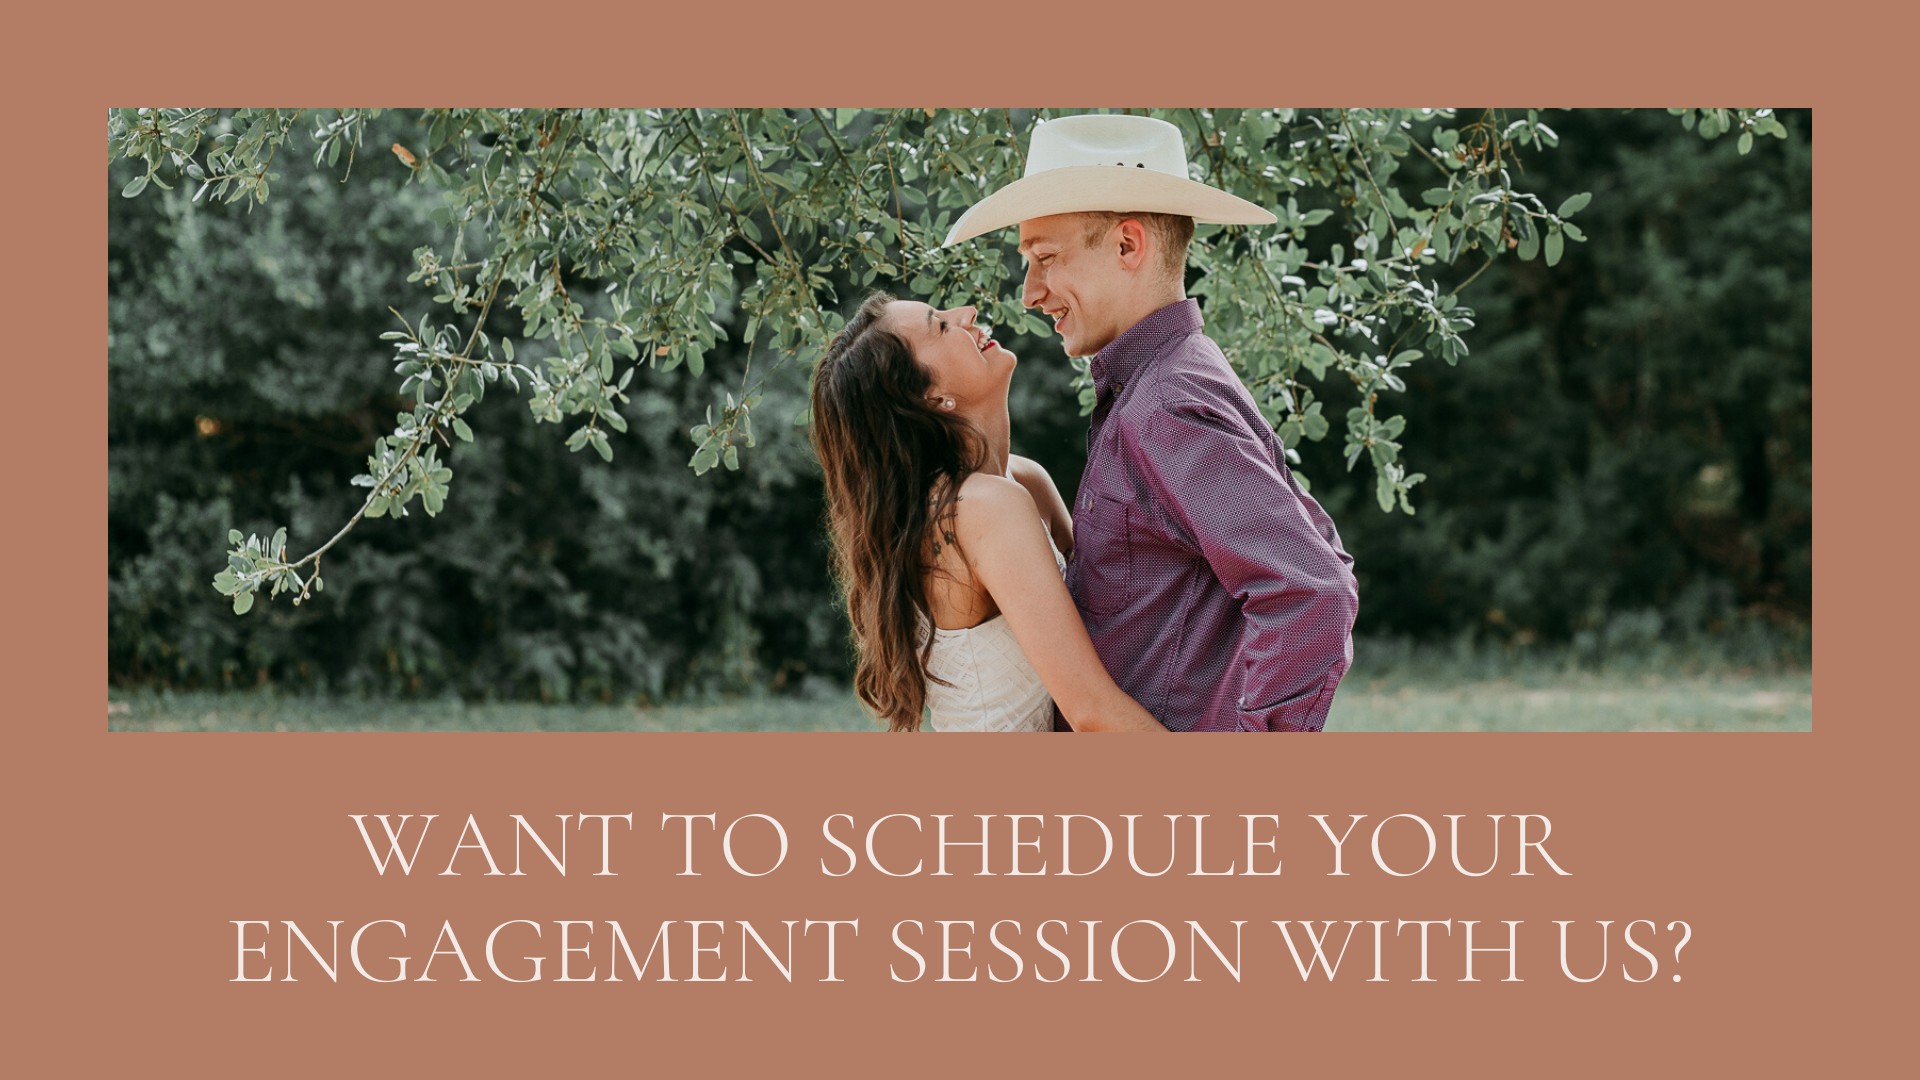 want to schedule an engagement session